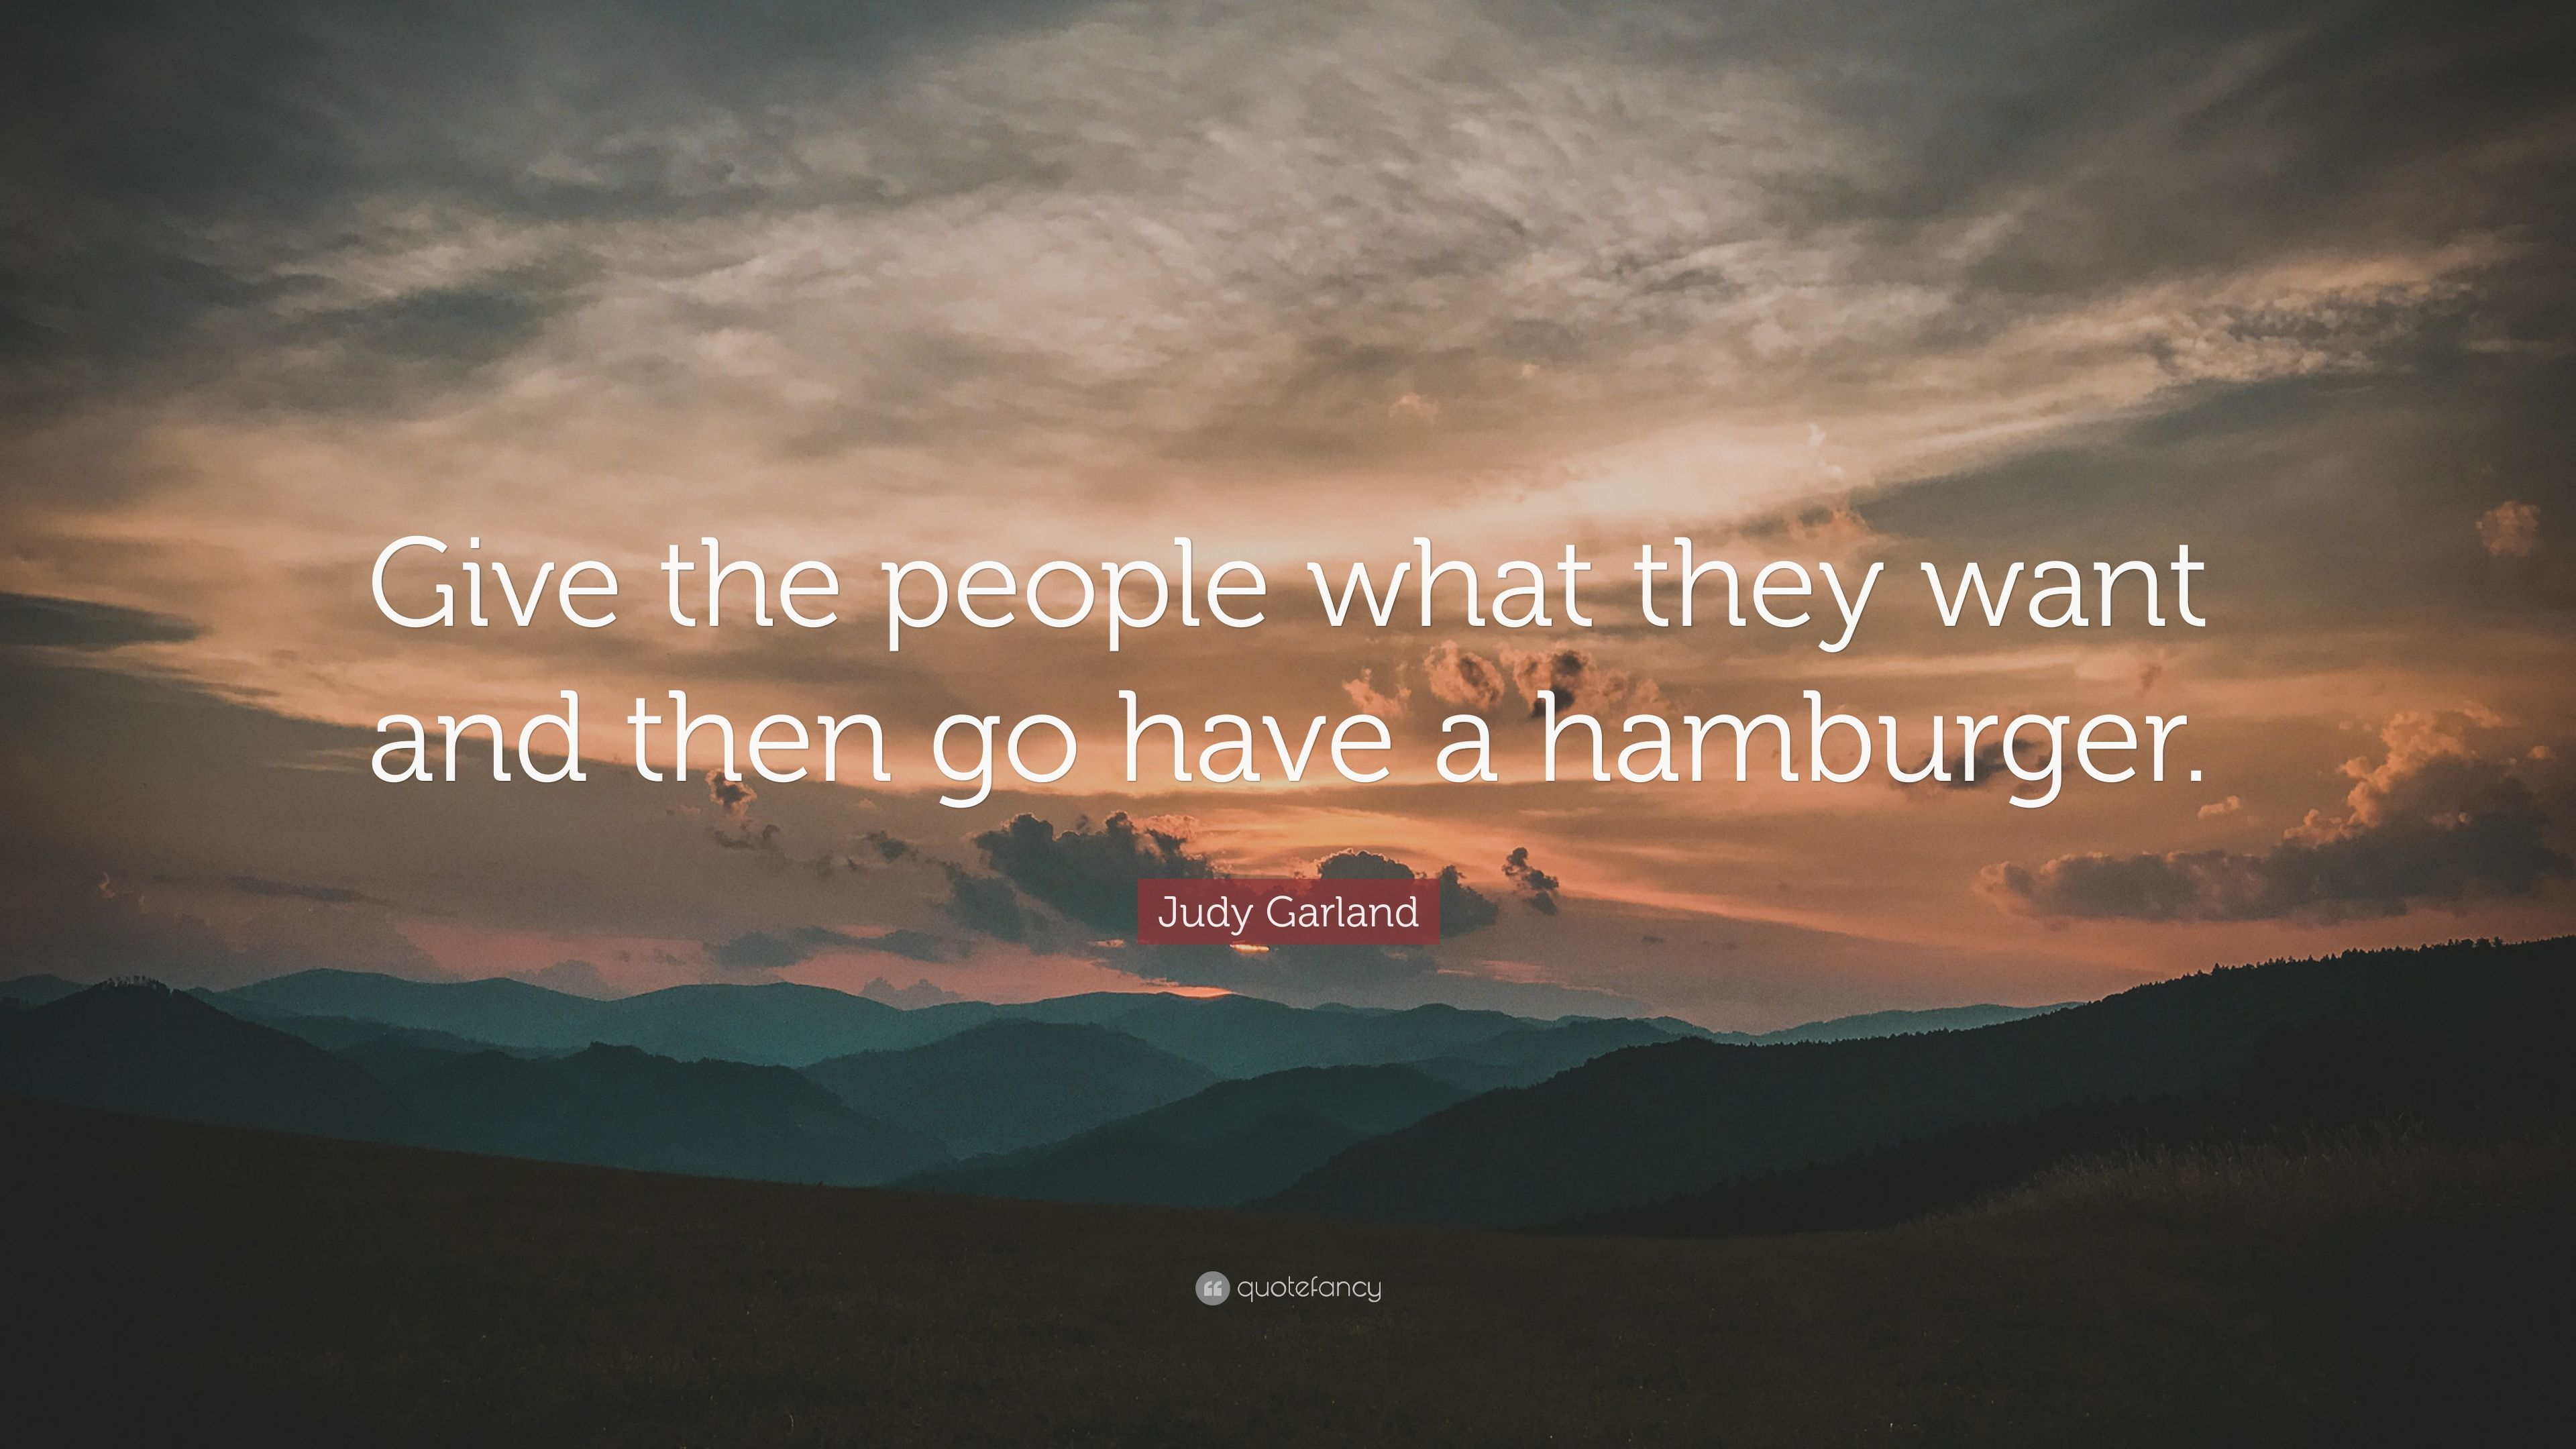 Judy Garland Quote Give The People What They Want And Then Go Have